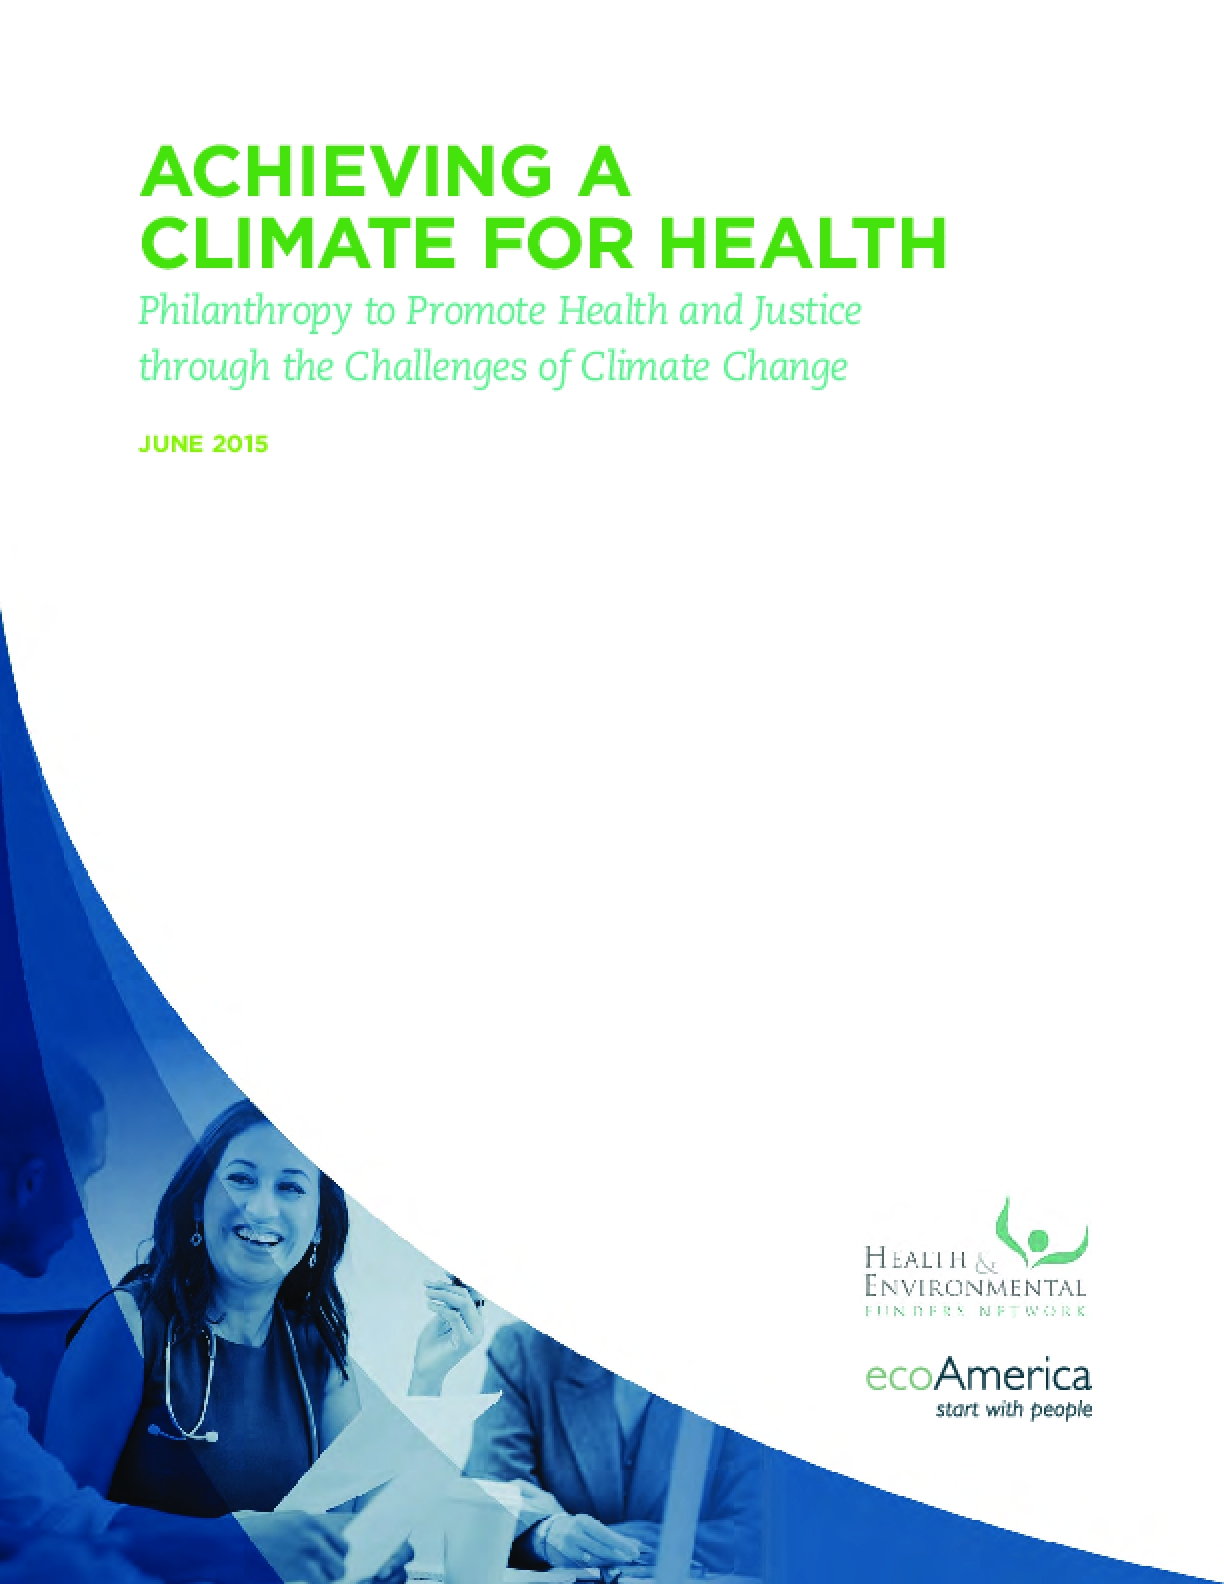 Achieving a Climate for Health: Philanthropy to Promote Health and Justice through the Challenges of Climate Change